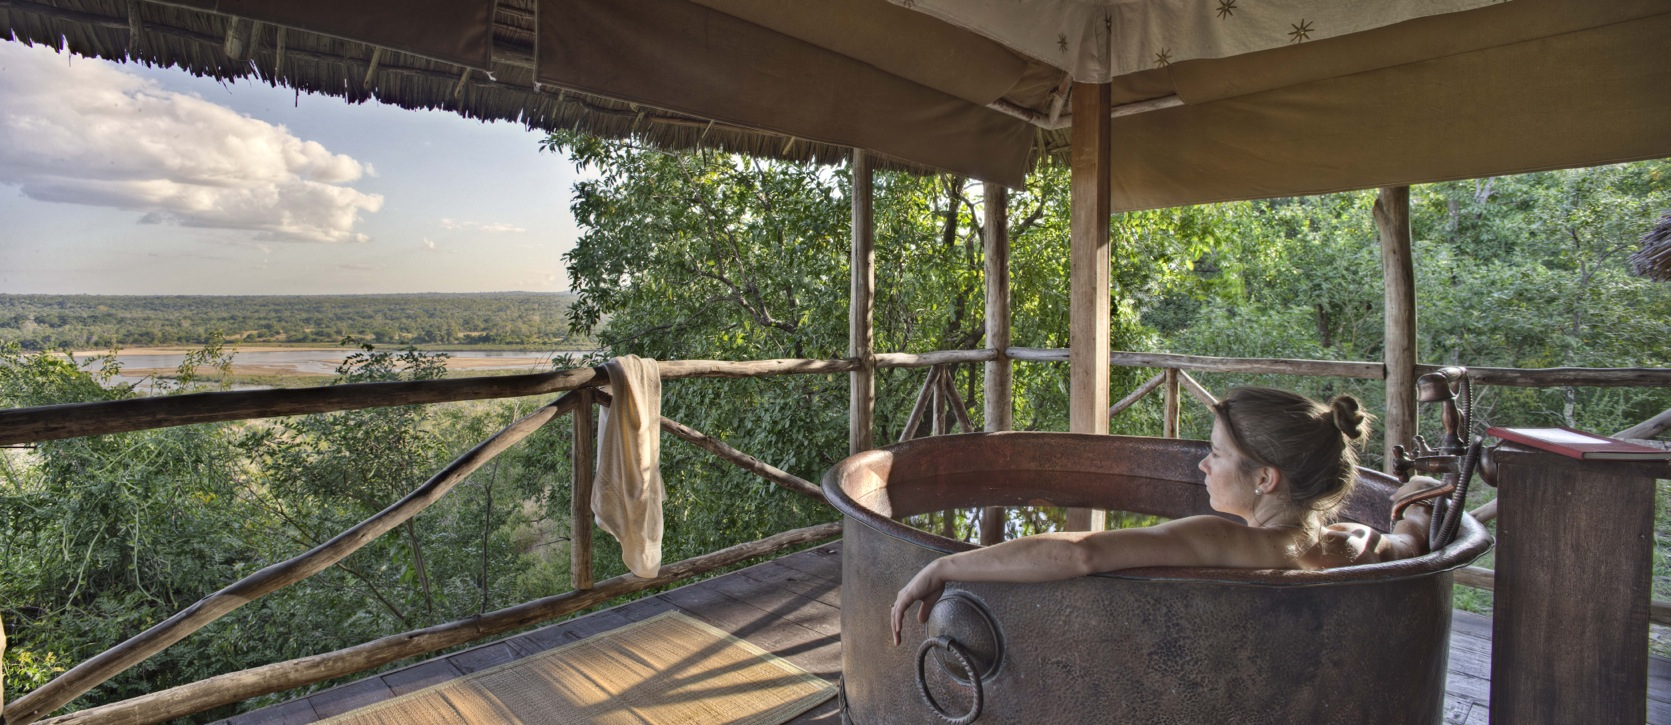 the-retreat-tanzania-safari-camp-honeymoon